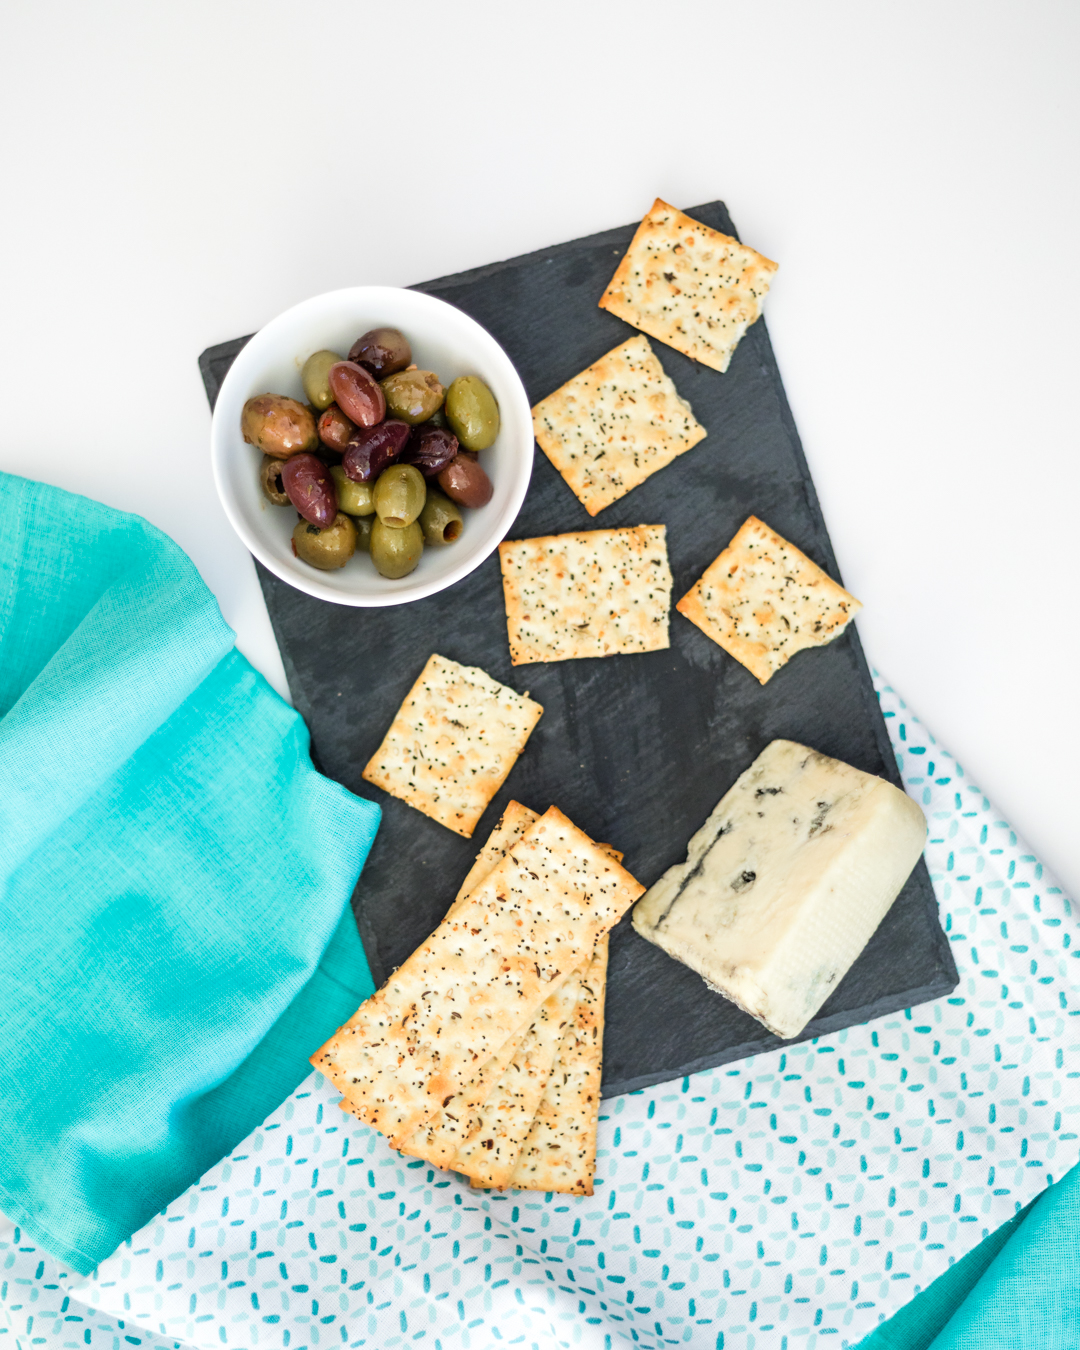 Step 3 - Arrange some flatbread crisps down the middle of your cheese platter. Depending on the size of your flatbread crisps you may wish to break them in half. In the remaining corner, arrange some additional flatbread crips.